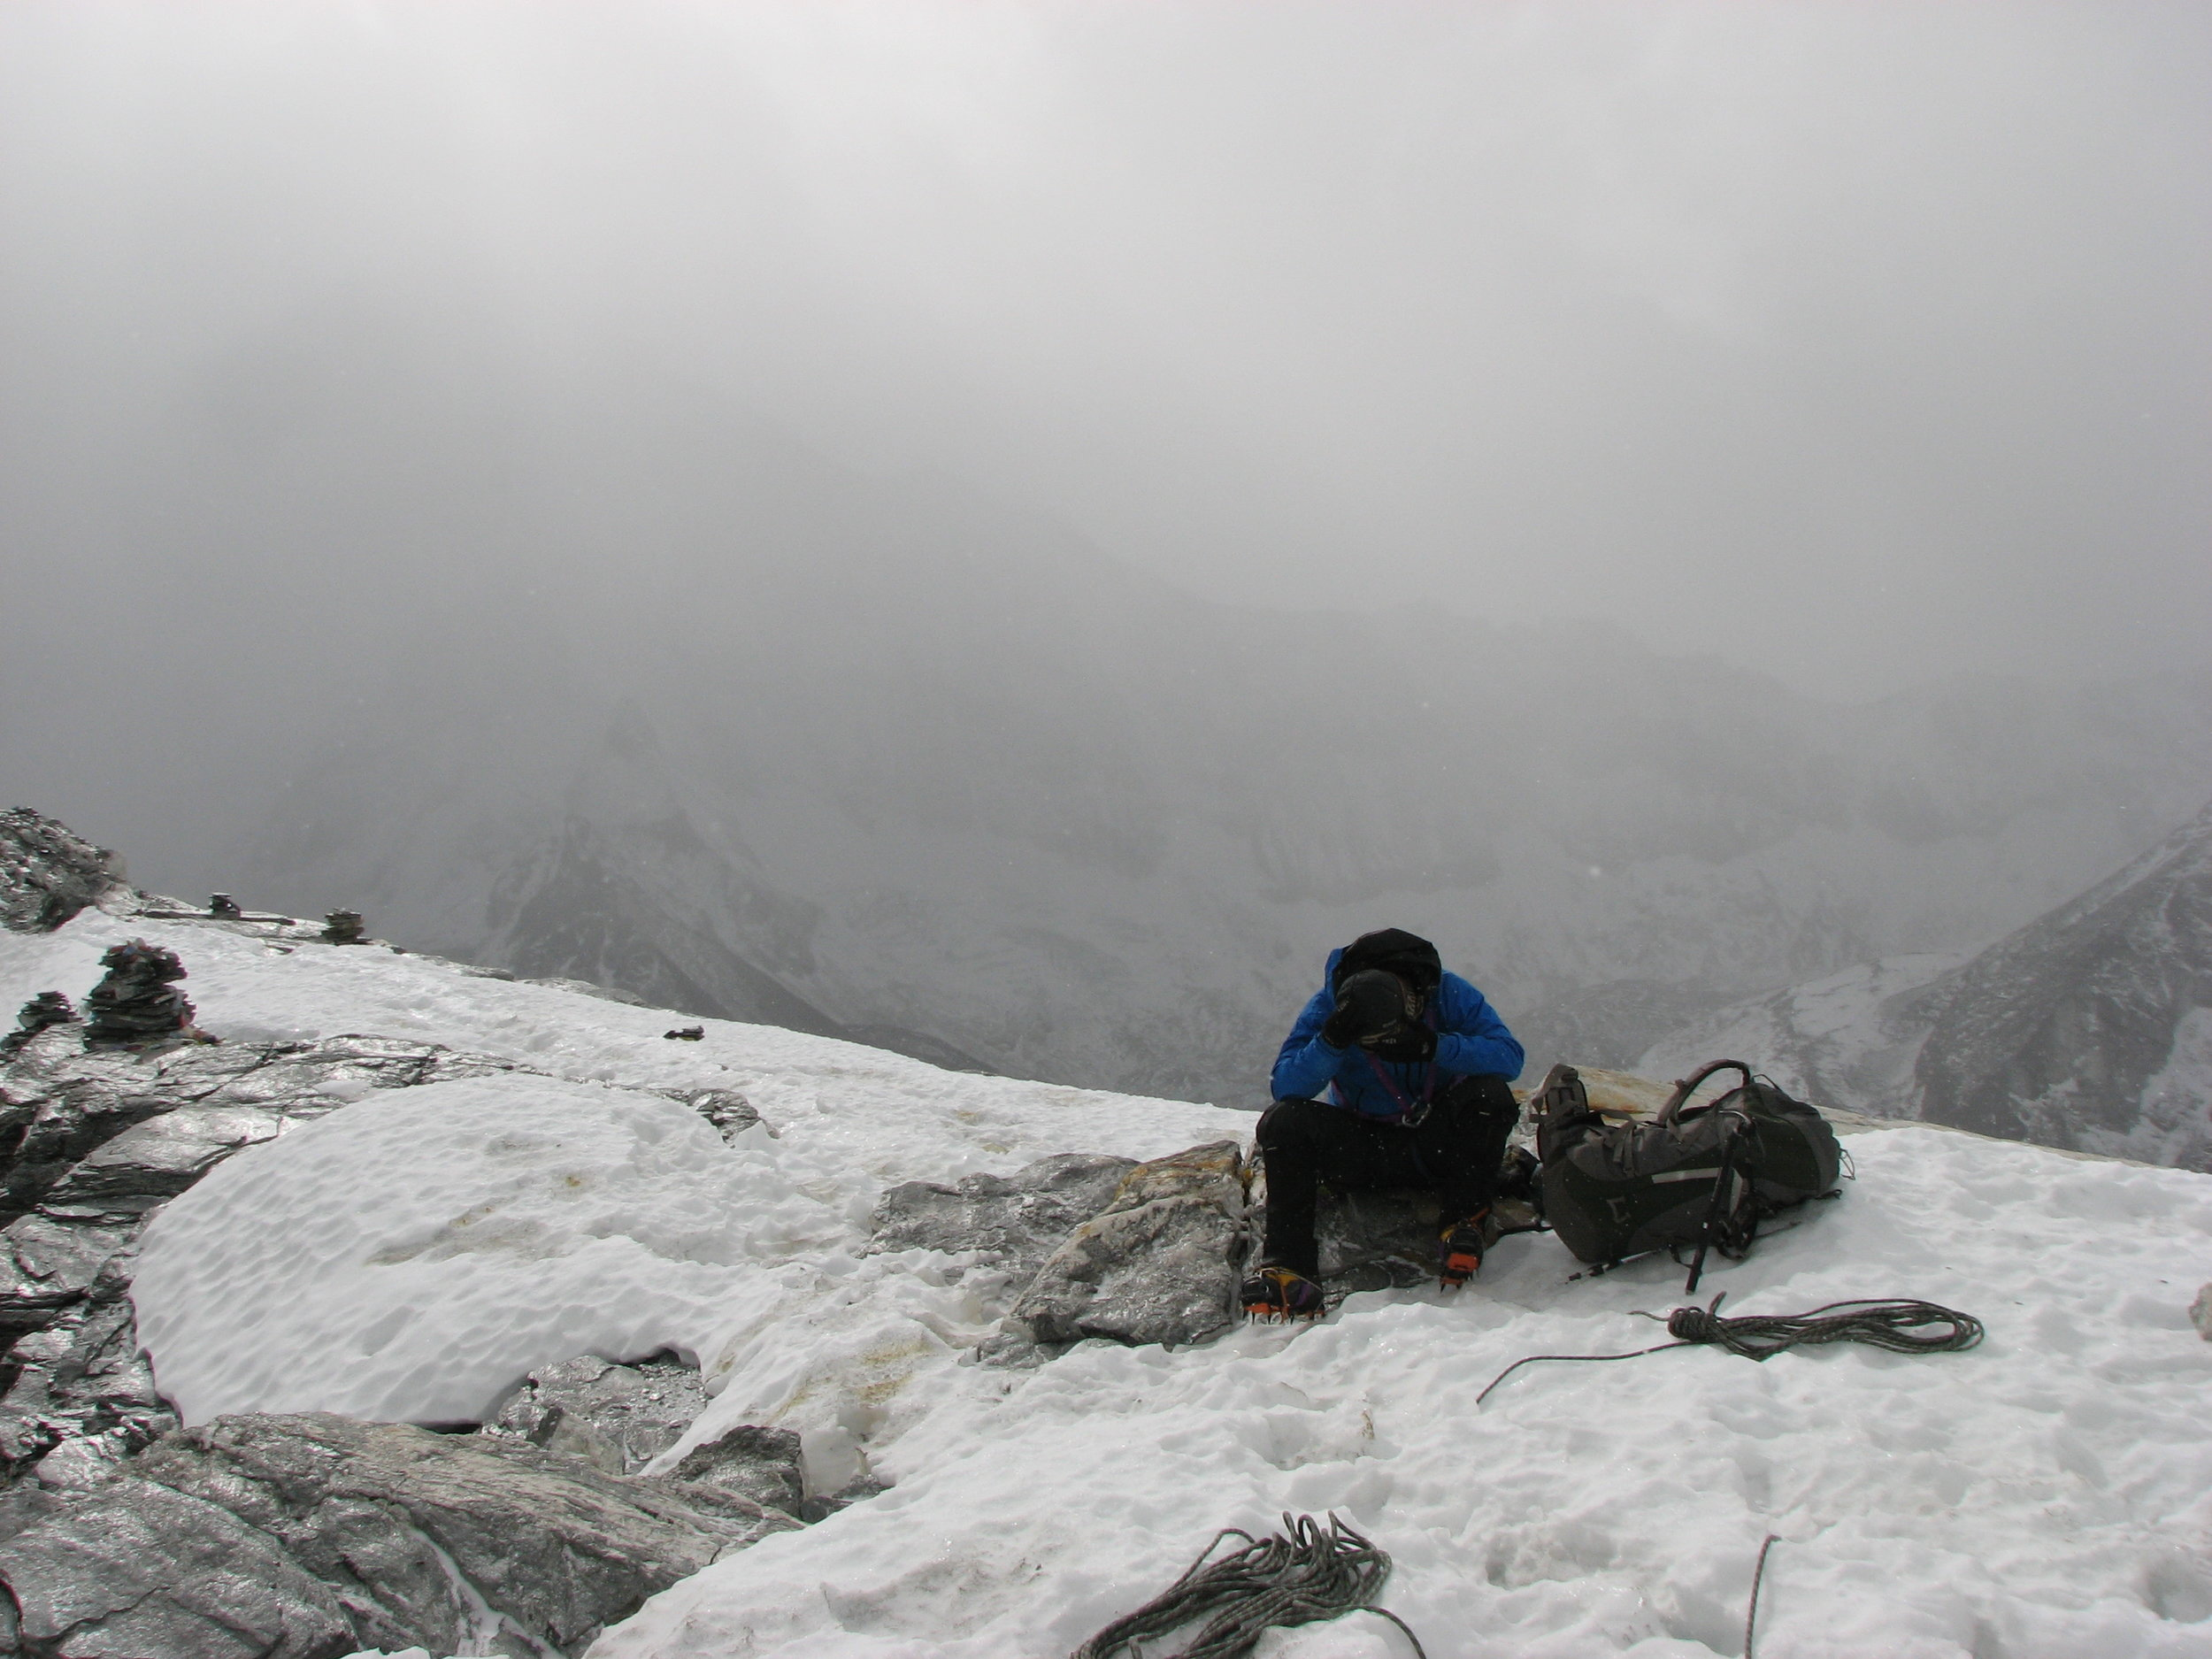 Forrest feeling the altitude and dismay after not summiting while bad weather rolls in from behind.